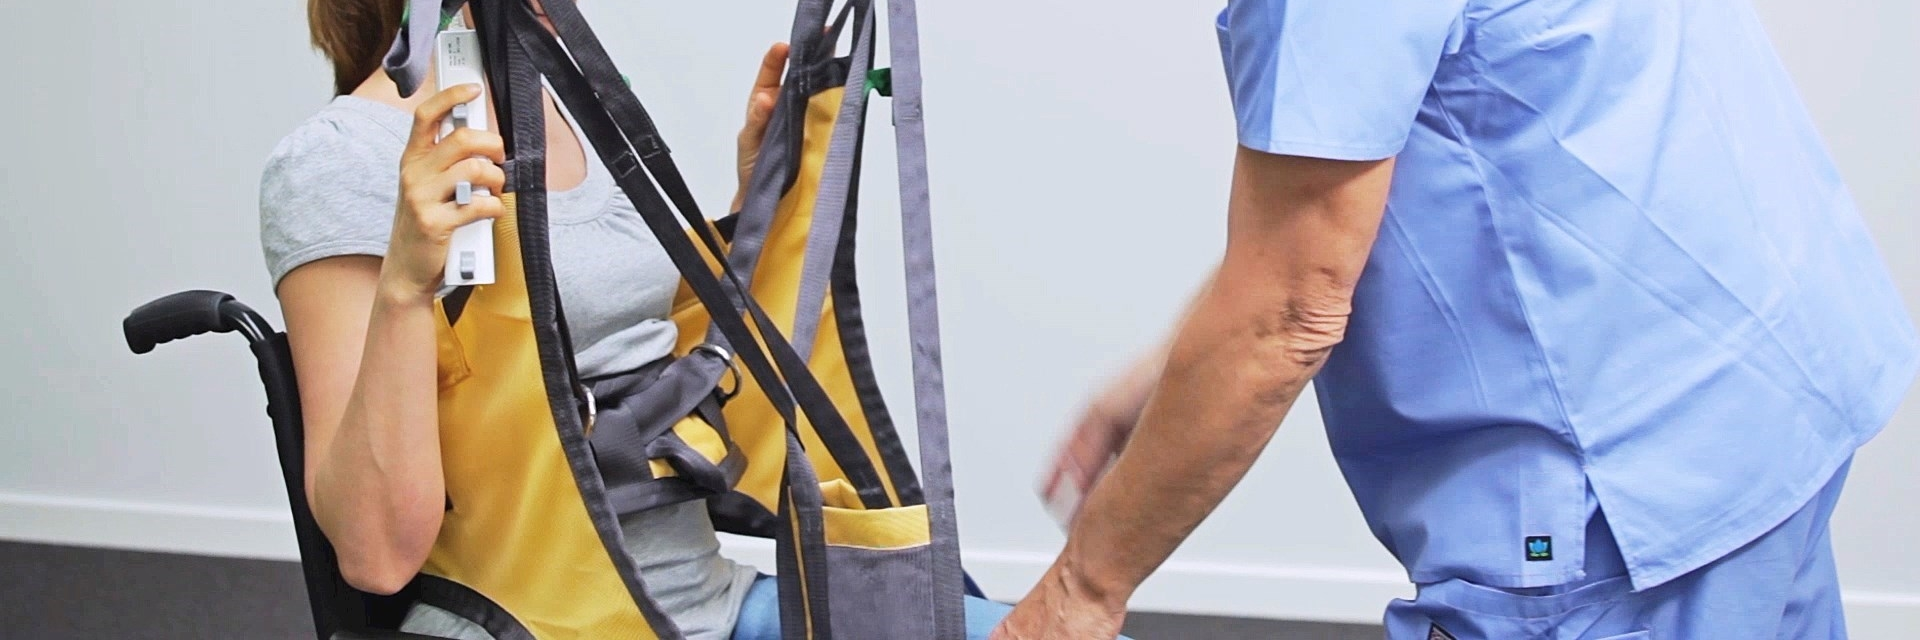 Active Micro Sling instruction - How to put the sling on / how to take the sling off in wheelchair